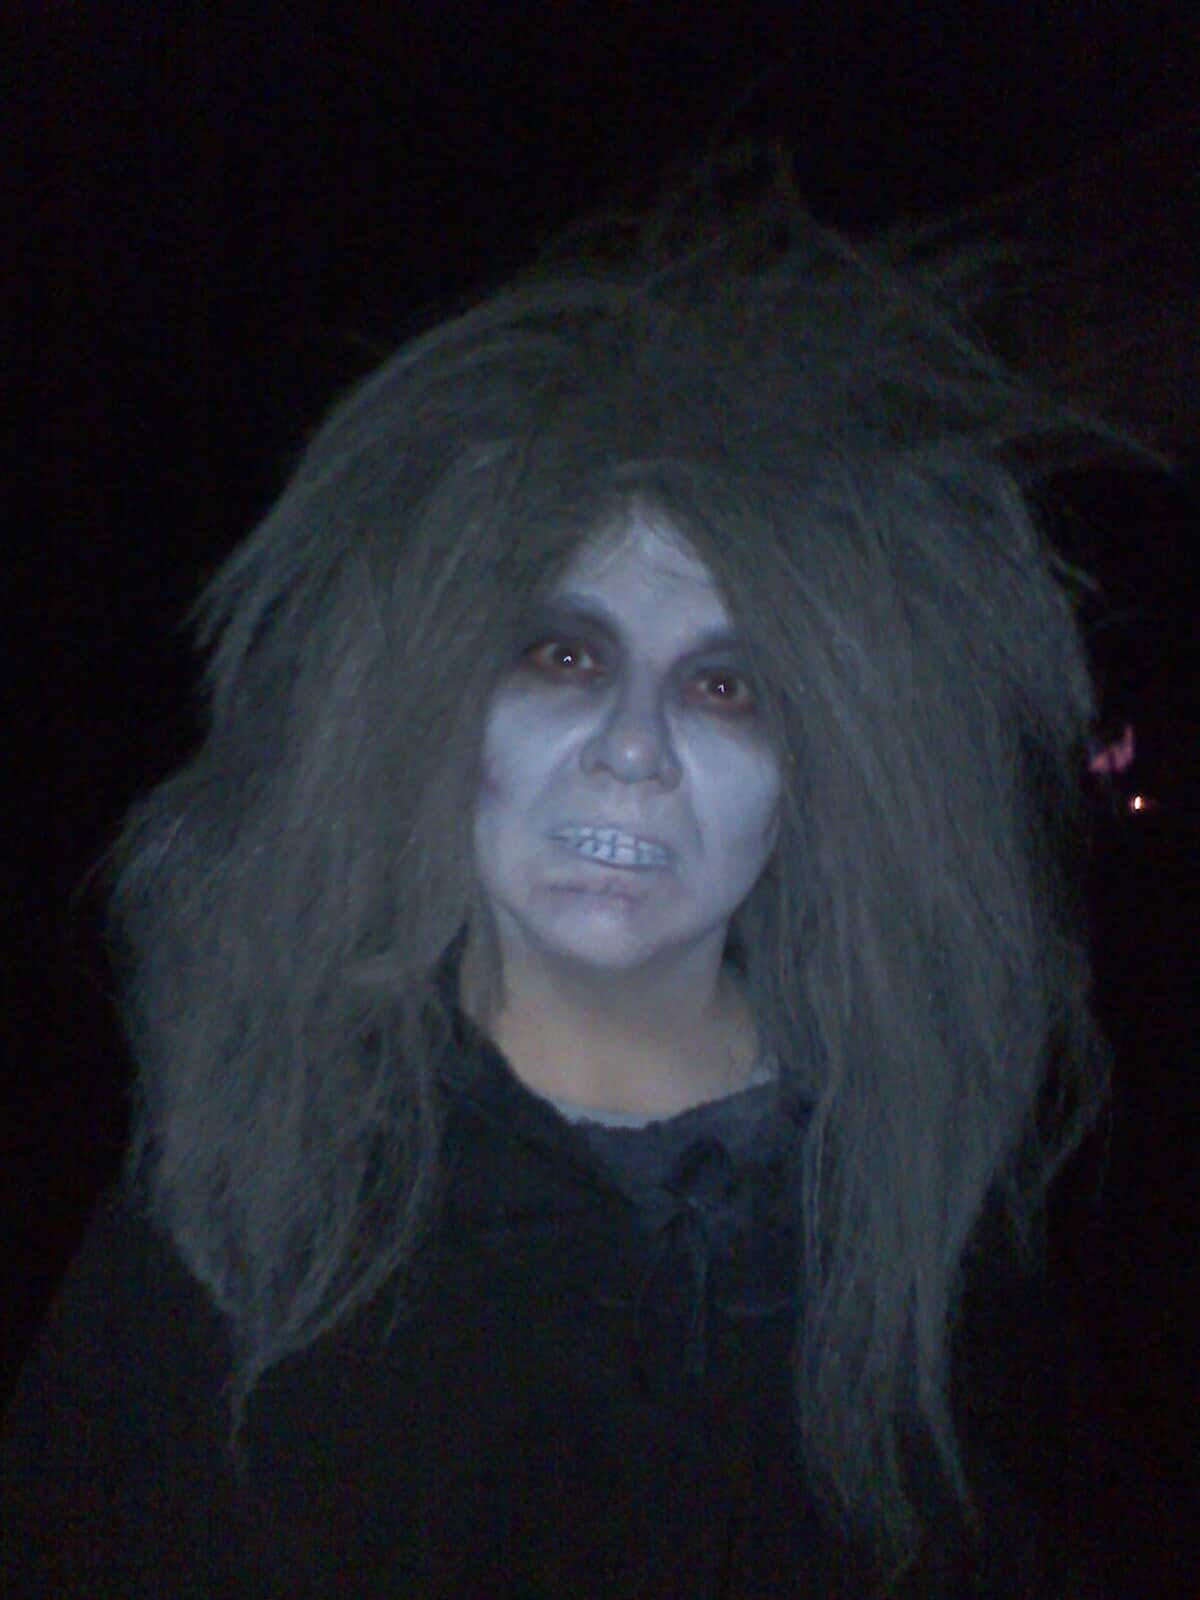 fun family halloween events in marshall, michigan - awesome mitten